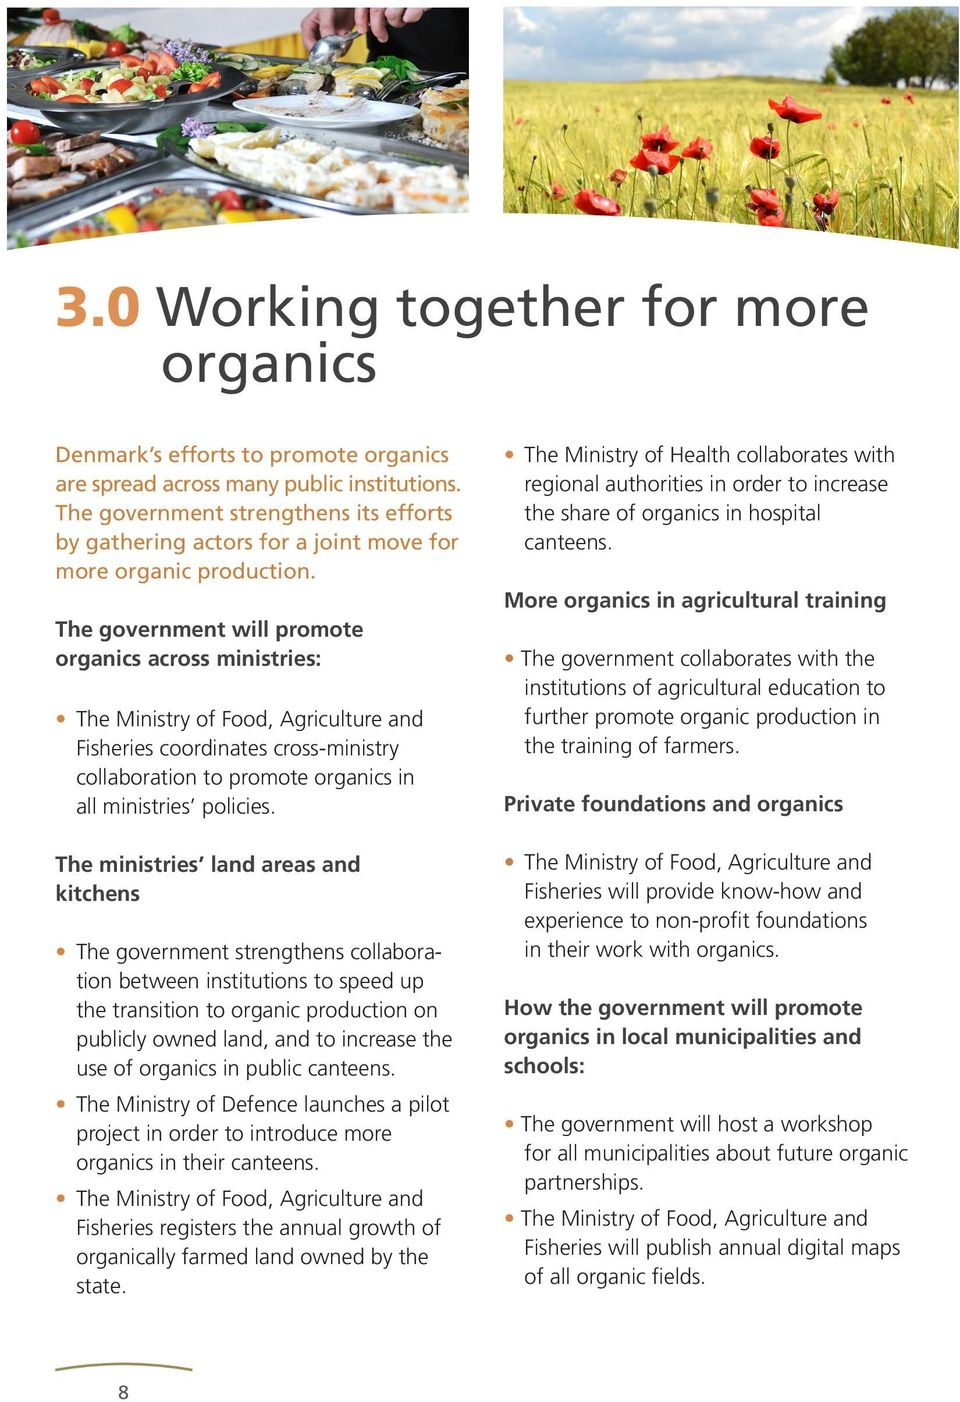 The government will promote organics across ministries: The Ministry of Food, Agriculture and Fisheries coordinates cross-ministry collaboration to promote organics in all ministries policies.